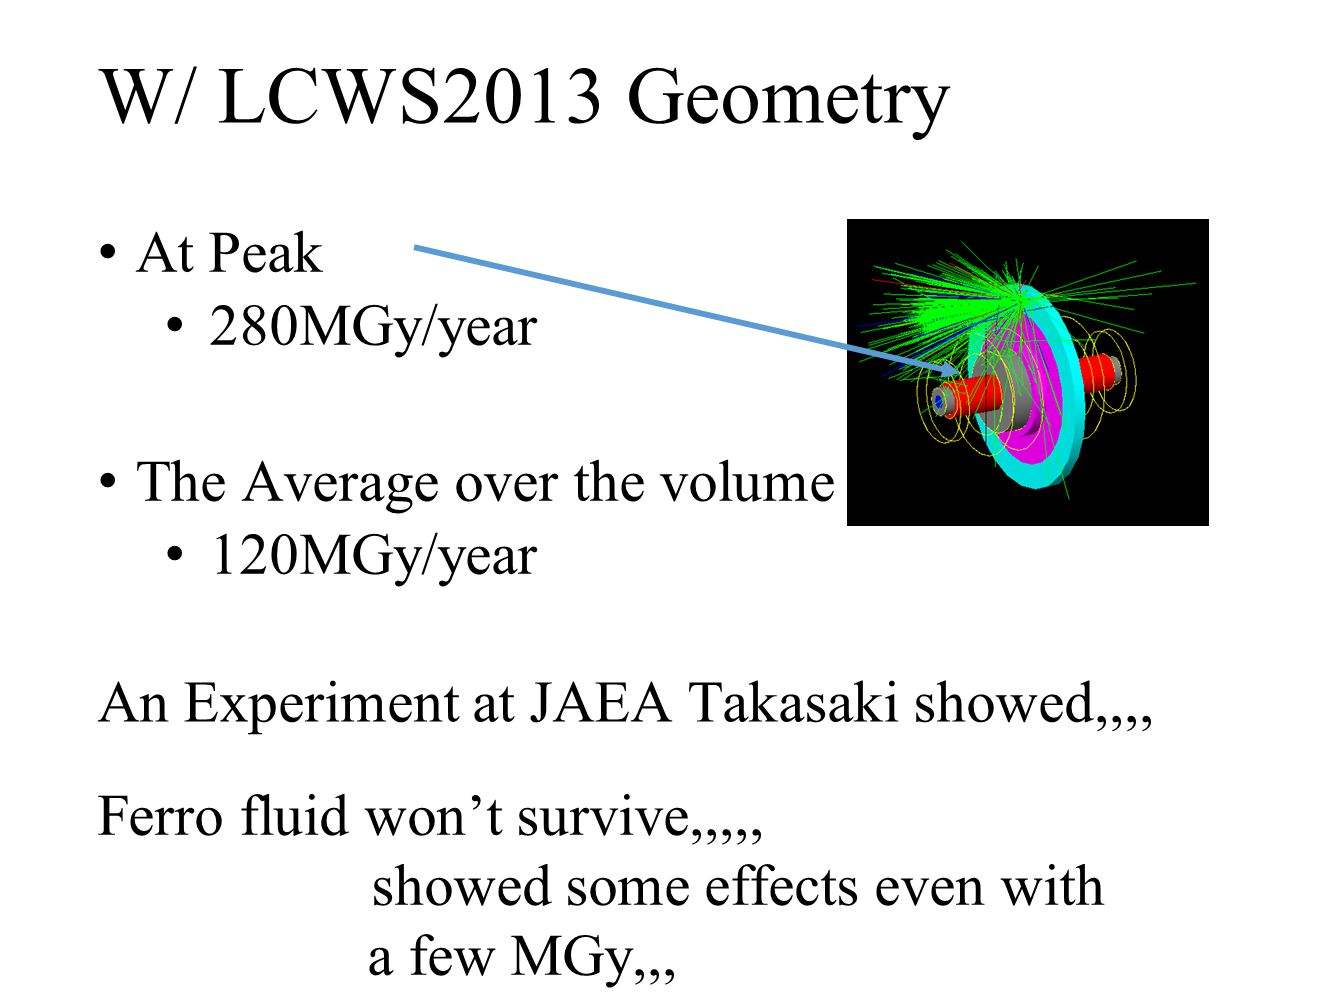 W/ LCWS2013 Geometry At Peak 280MGy/year The Average over the volume 120MGy/year An Experiment at JAEA Takasaki showed,,,, Ferro fluid won't survive,,,,, showed some effects even with a few MGy,,,